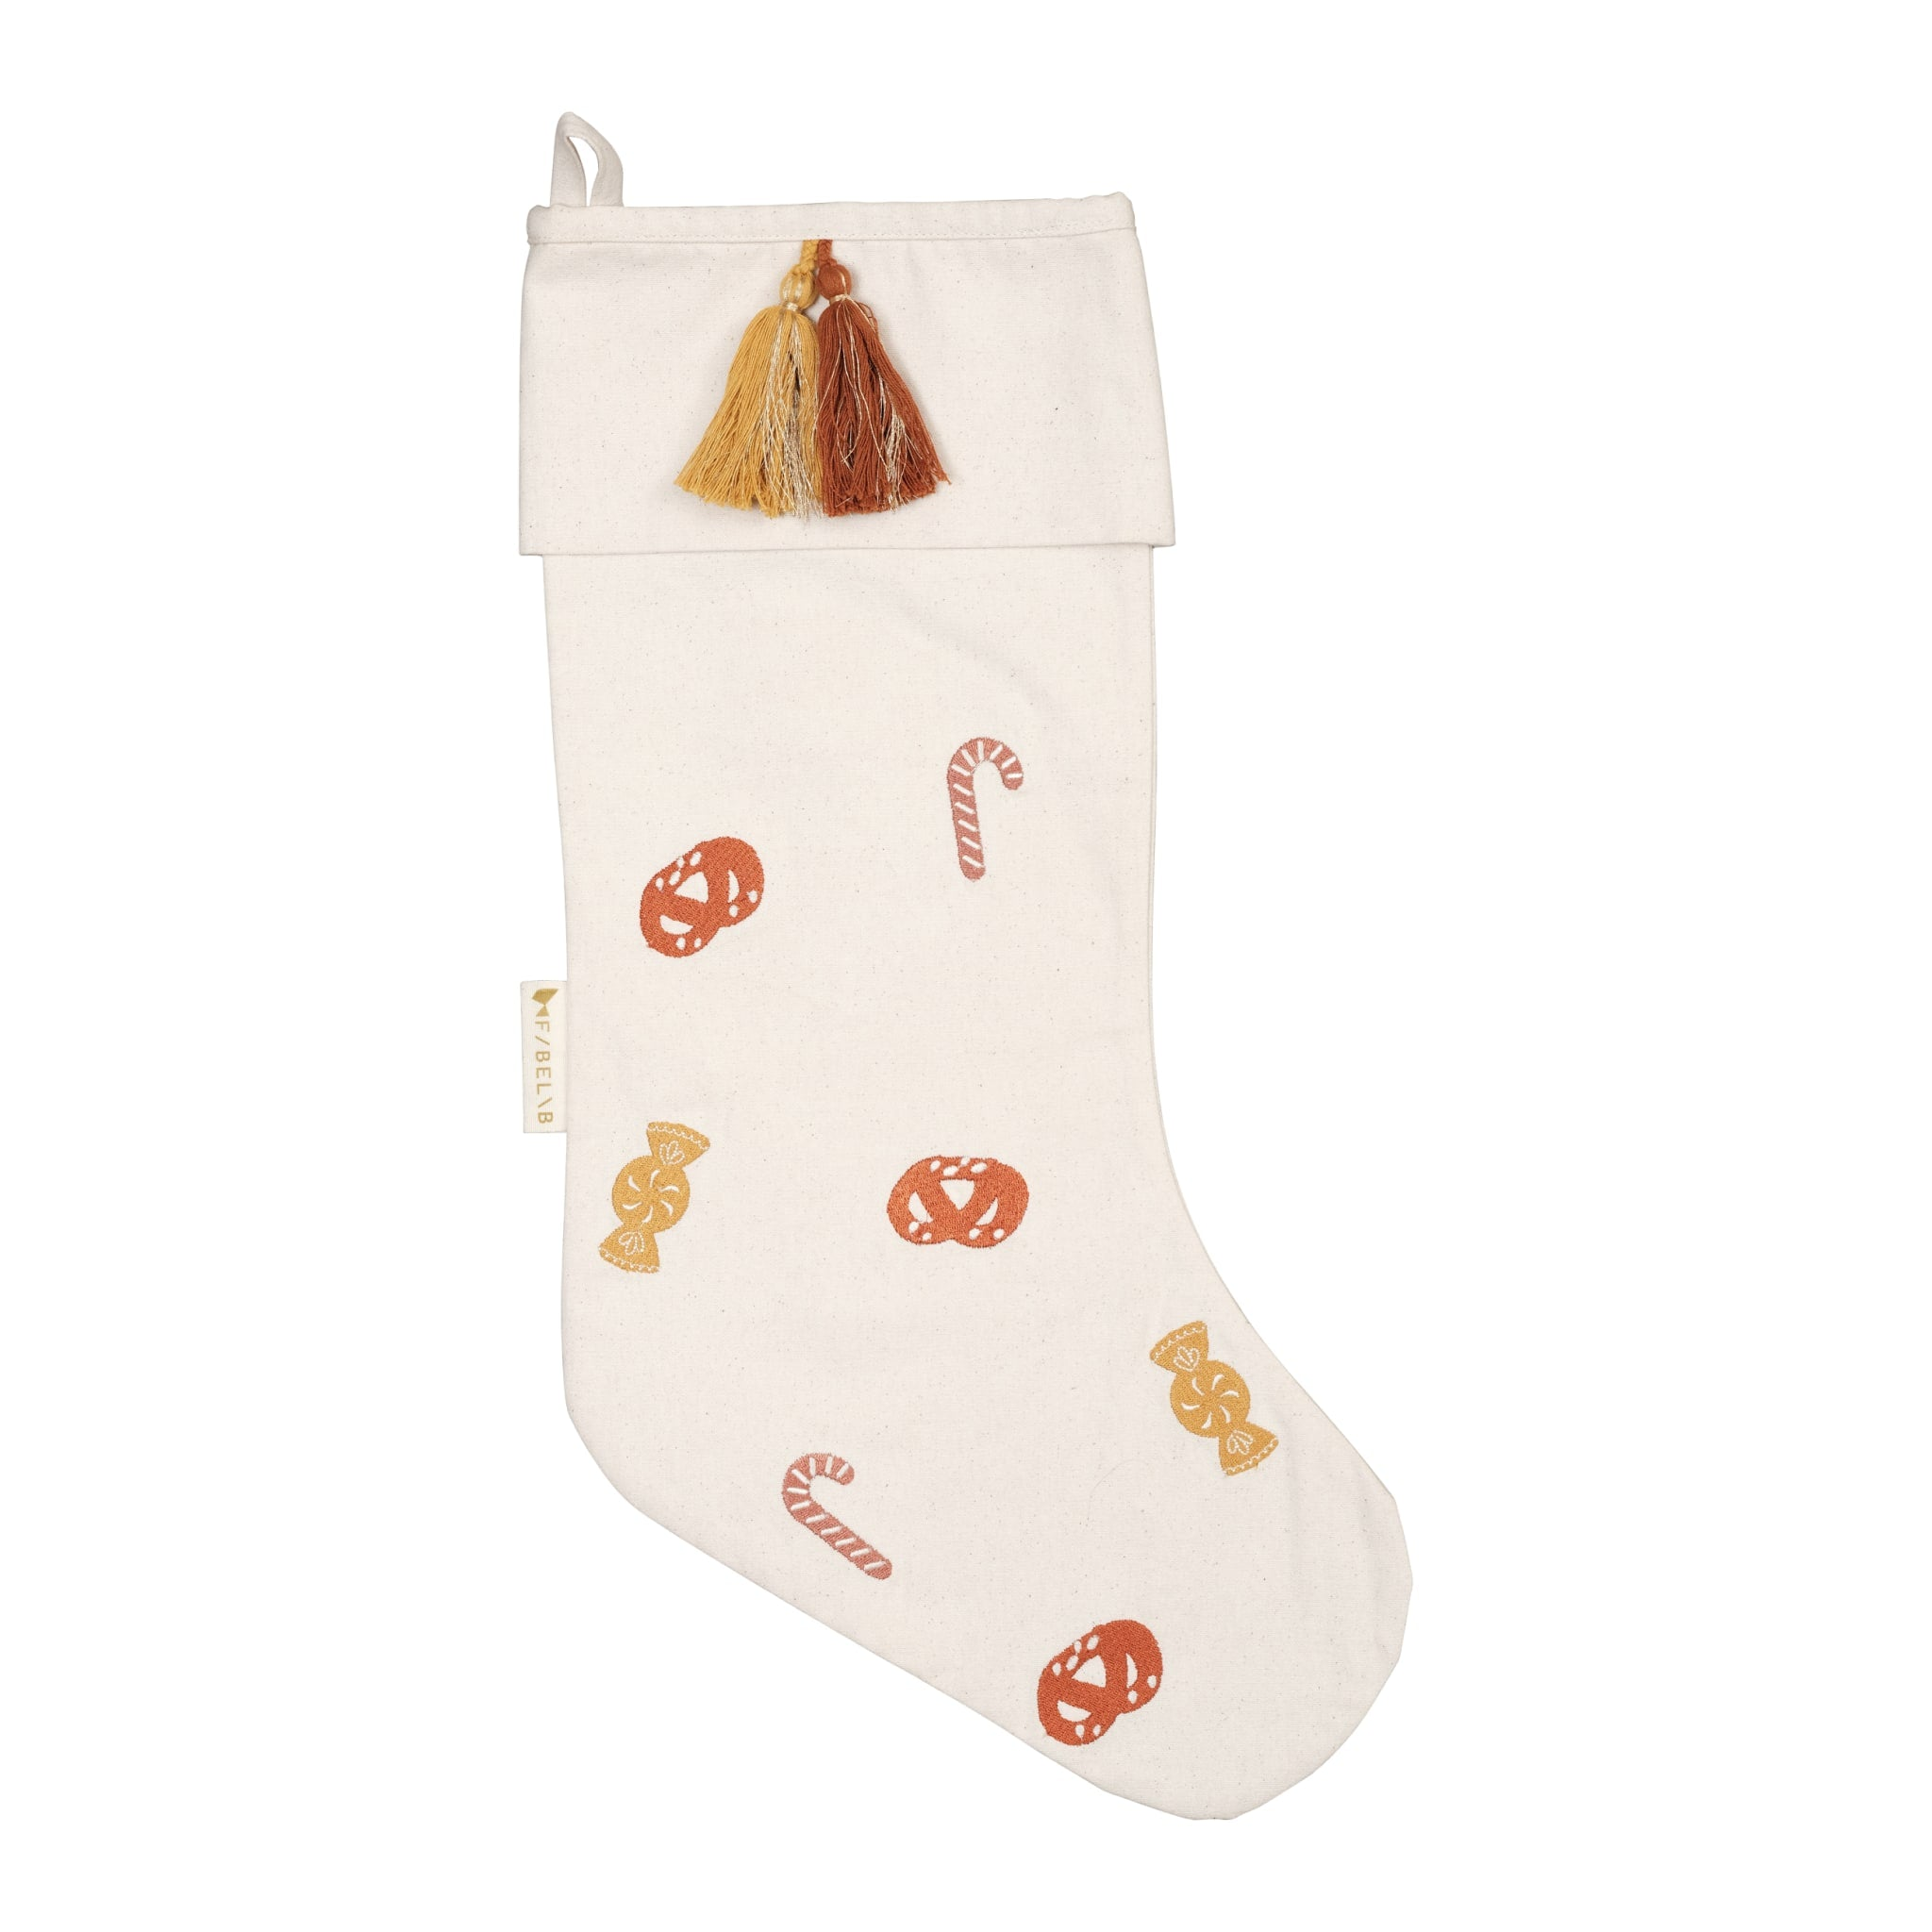 Stocking - Candy - Embroidered